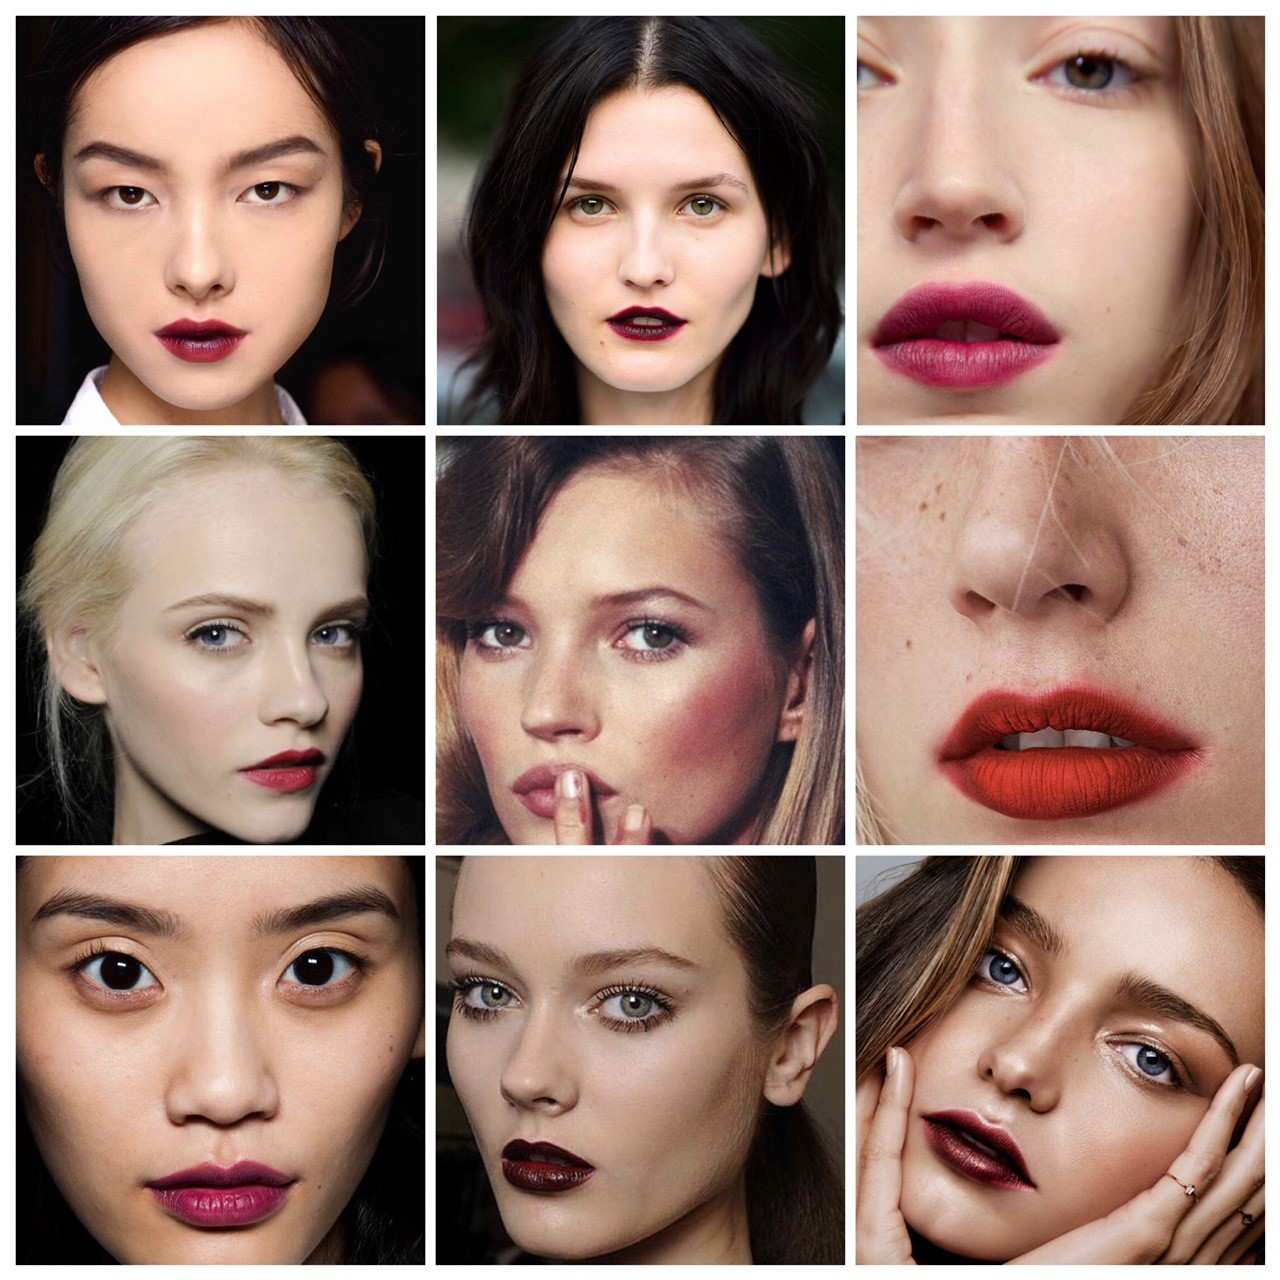 Images (left to right): Fei Fei Sun, Lanvin, FW 2013 / image unknown/ Glossier / Ginta Lapina, Pat McGrath for Dolce & Gabbana, A/W 2010/ Kate Moss / image unknown /  image unknown / i,age unknown / Miranda Kerr, Glamour, 2015.